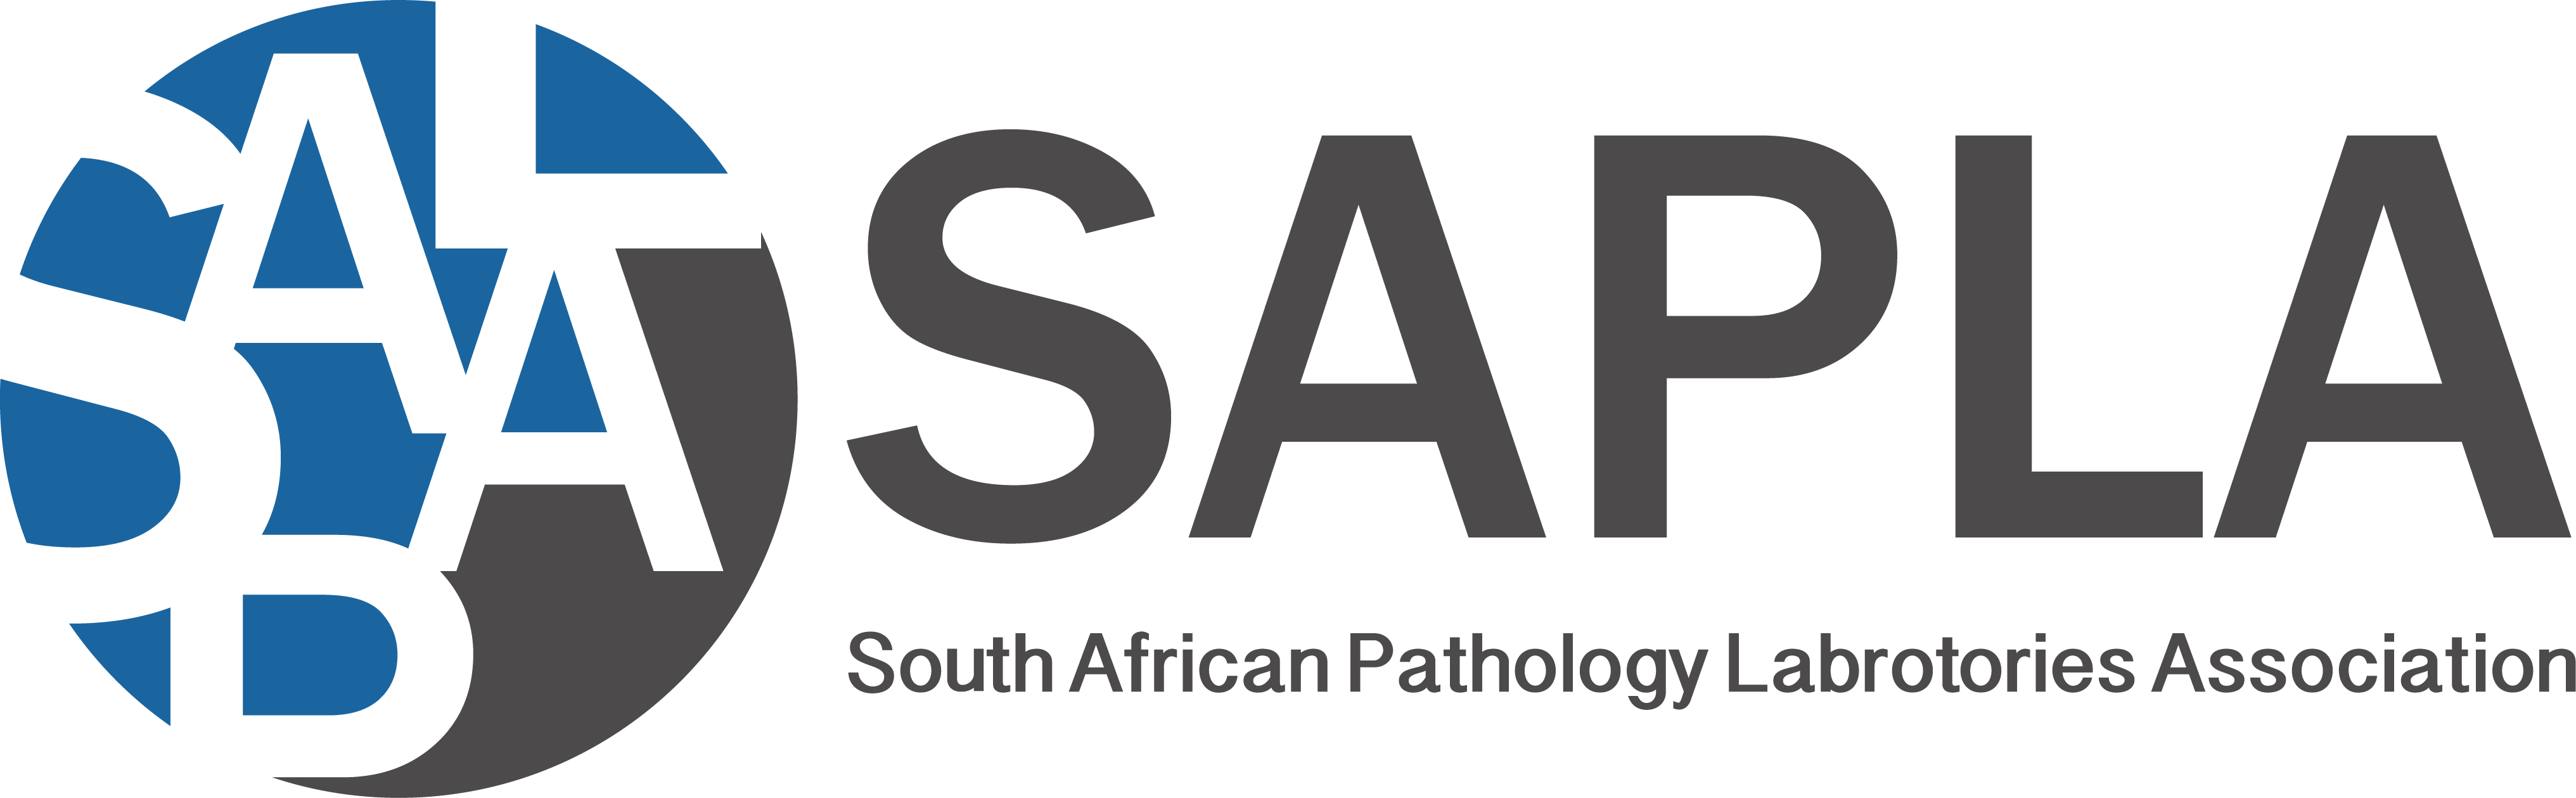 South African Pathology Laboratories Association